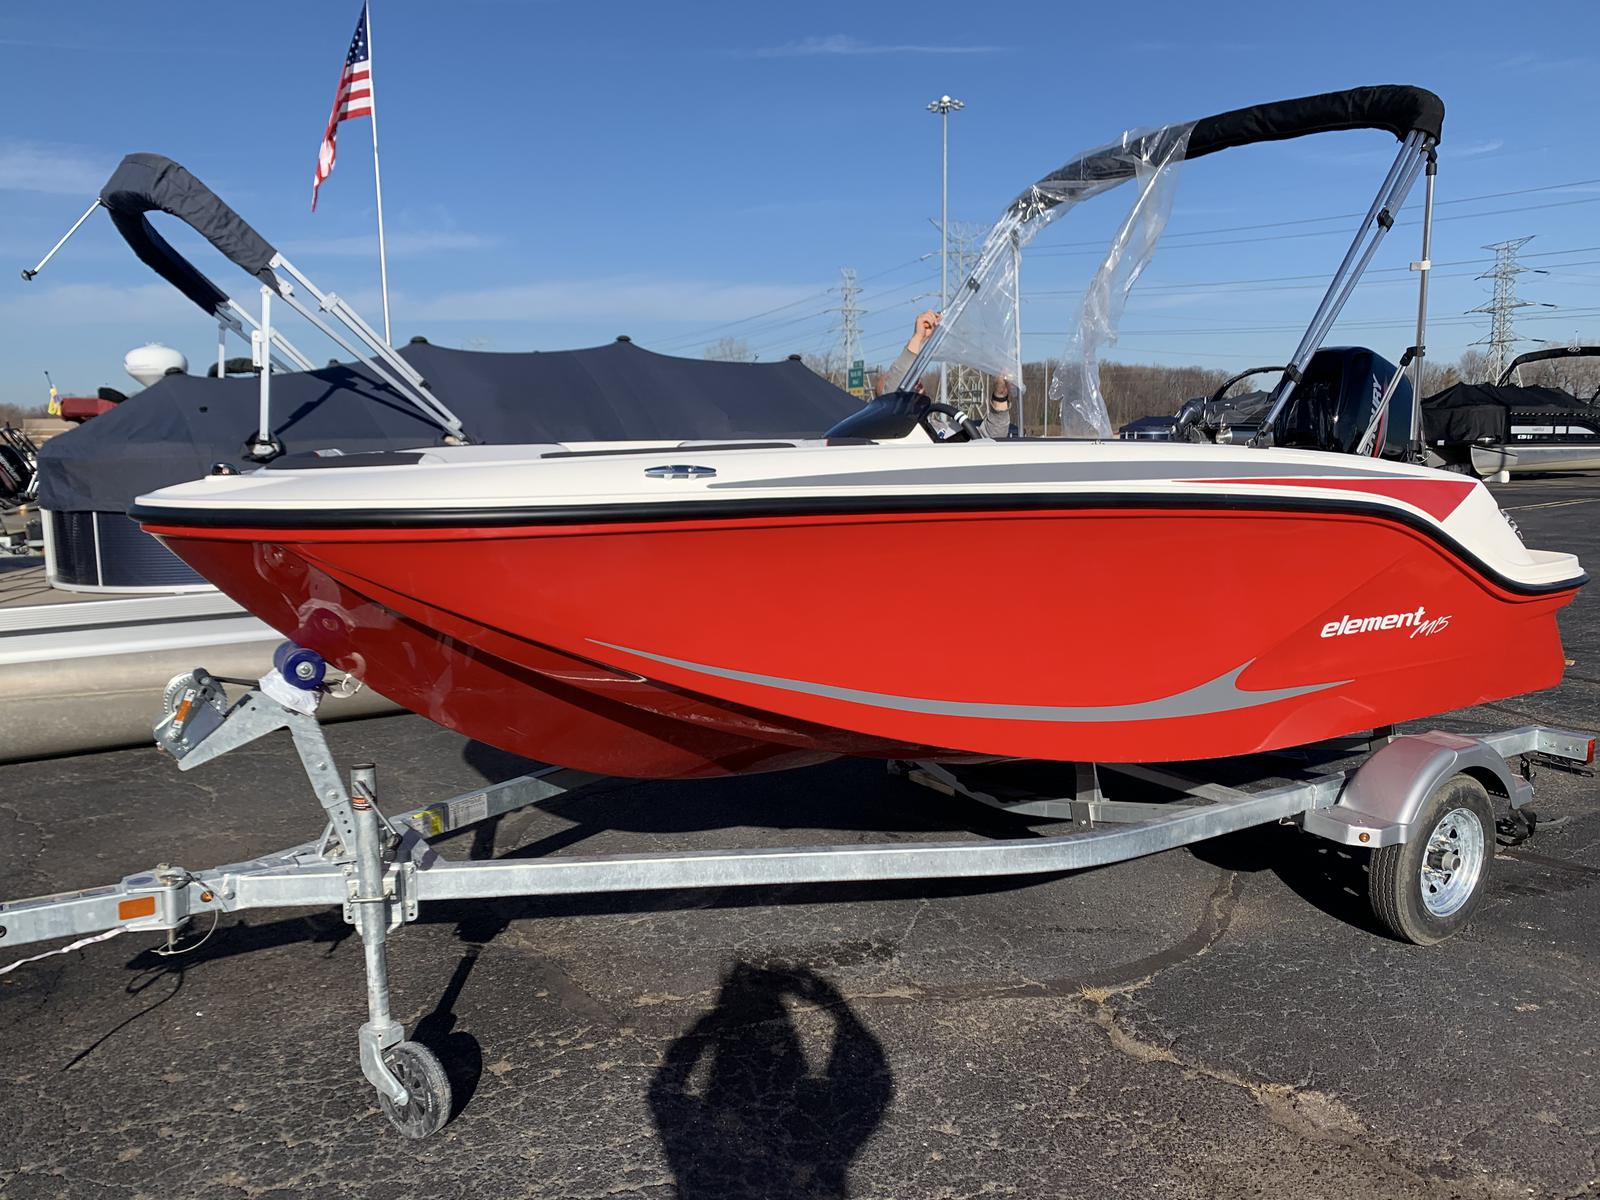 2021 Bayliner boat for sale, model of the boat is M-15 & Image # 1 of 11